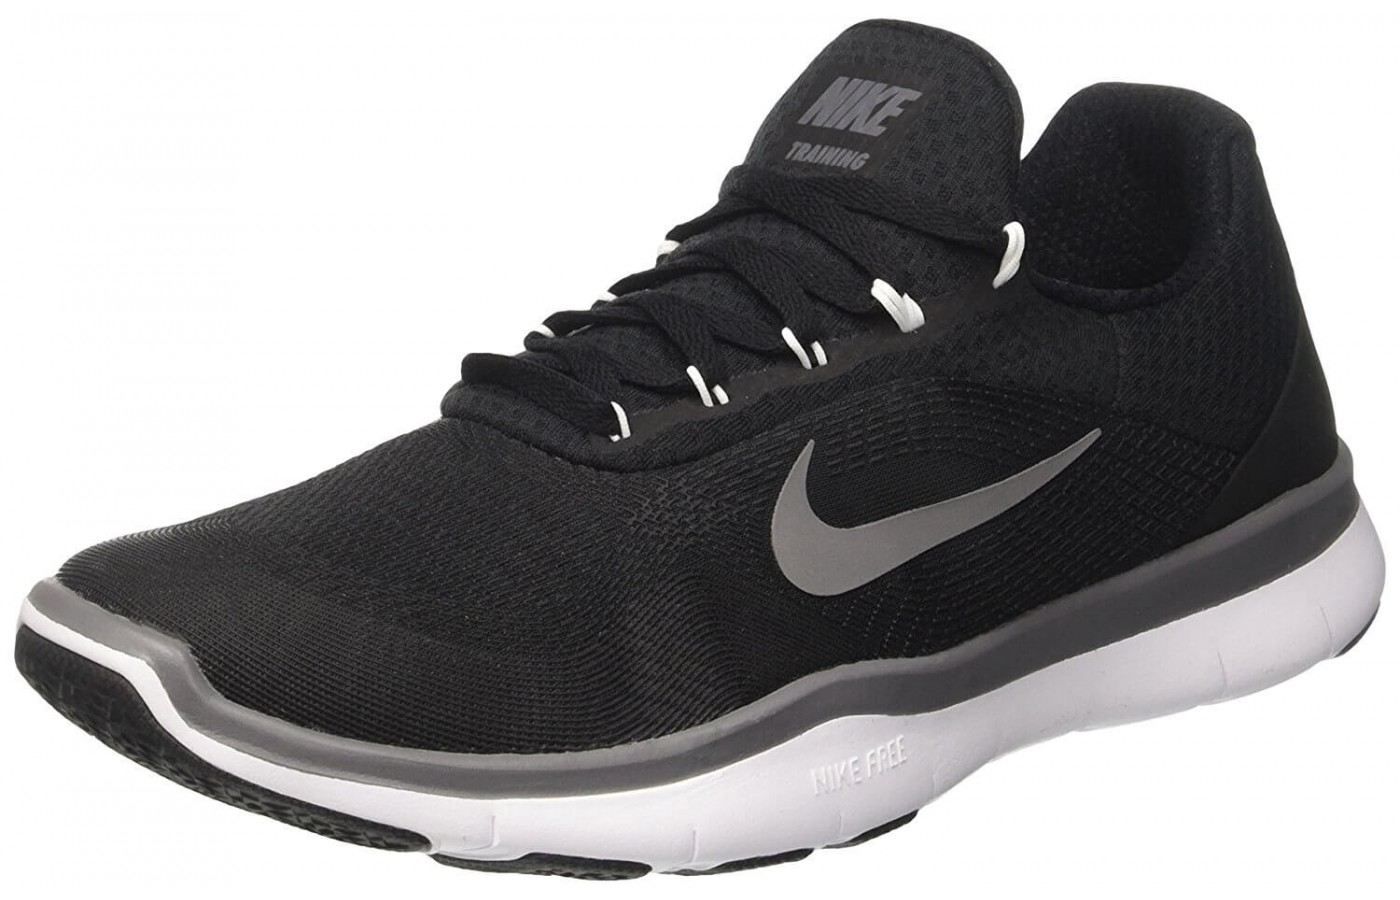 The Nike Free Trainer V7 has a lightweight mesh upper